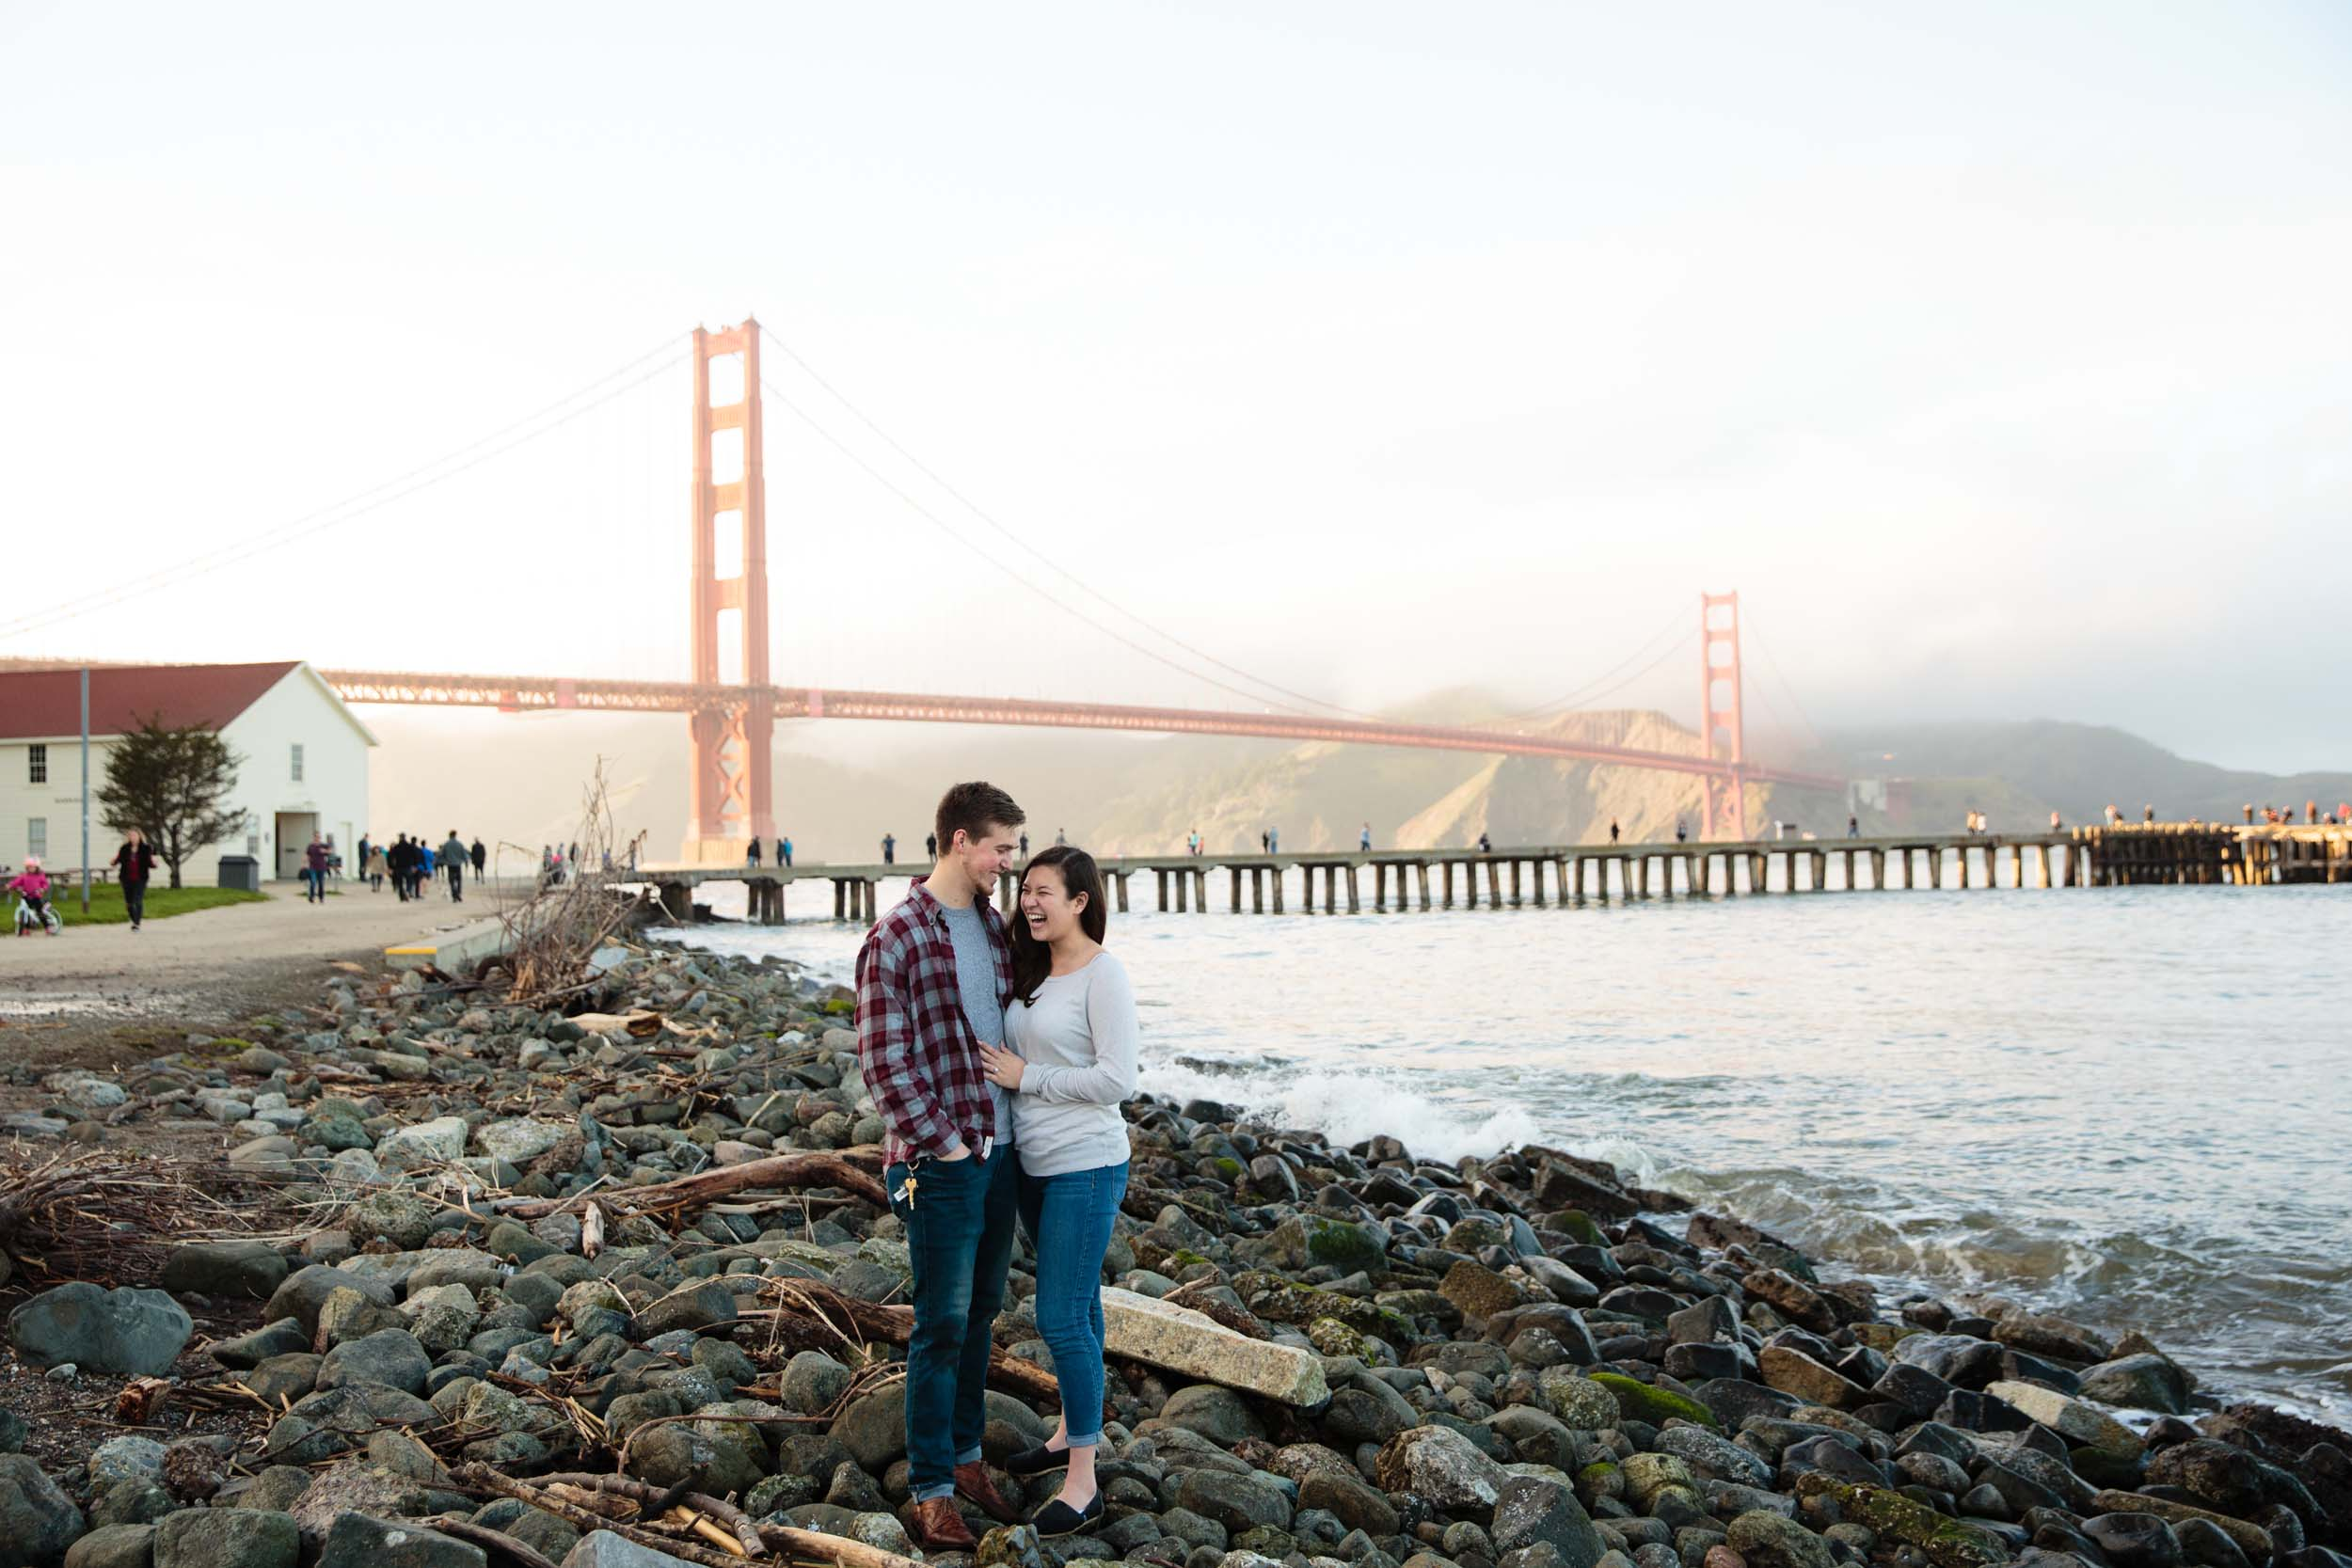 A couple embraces in front of the Golden Gate Bridge in San Francisco.